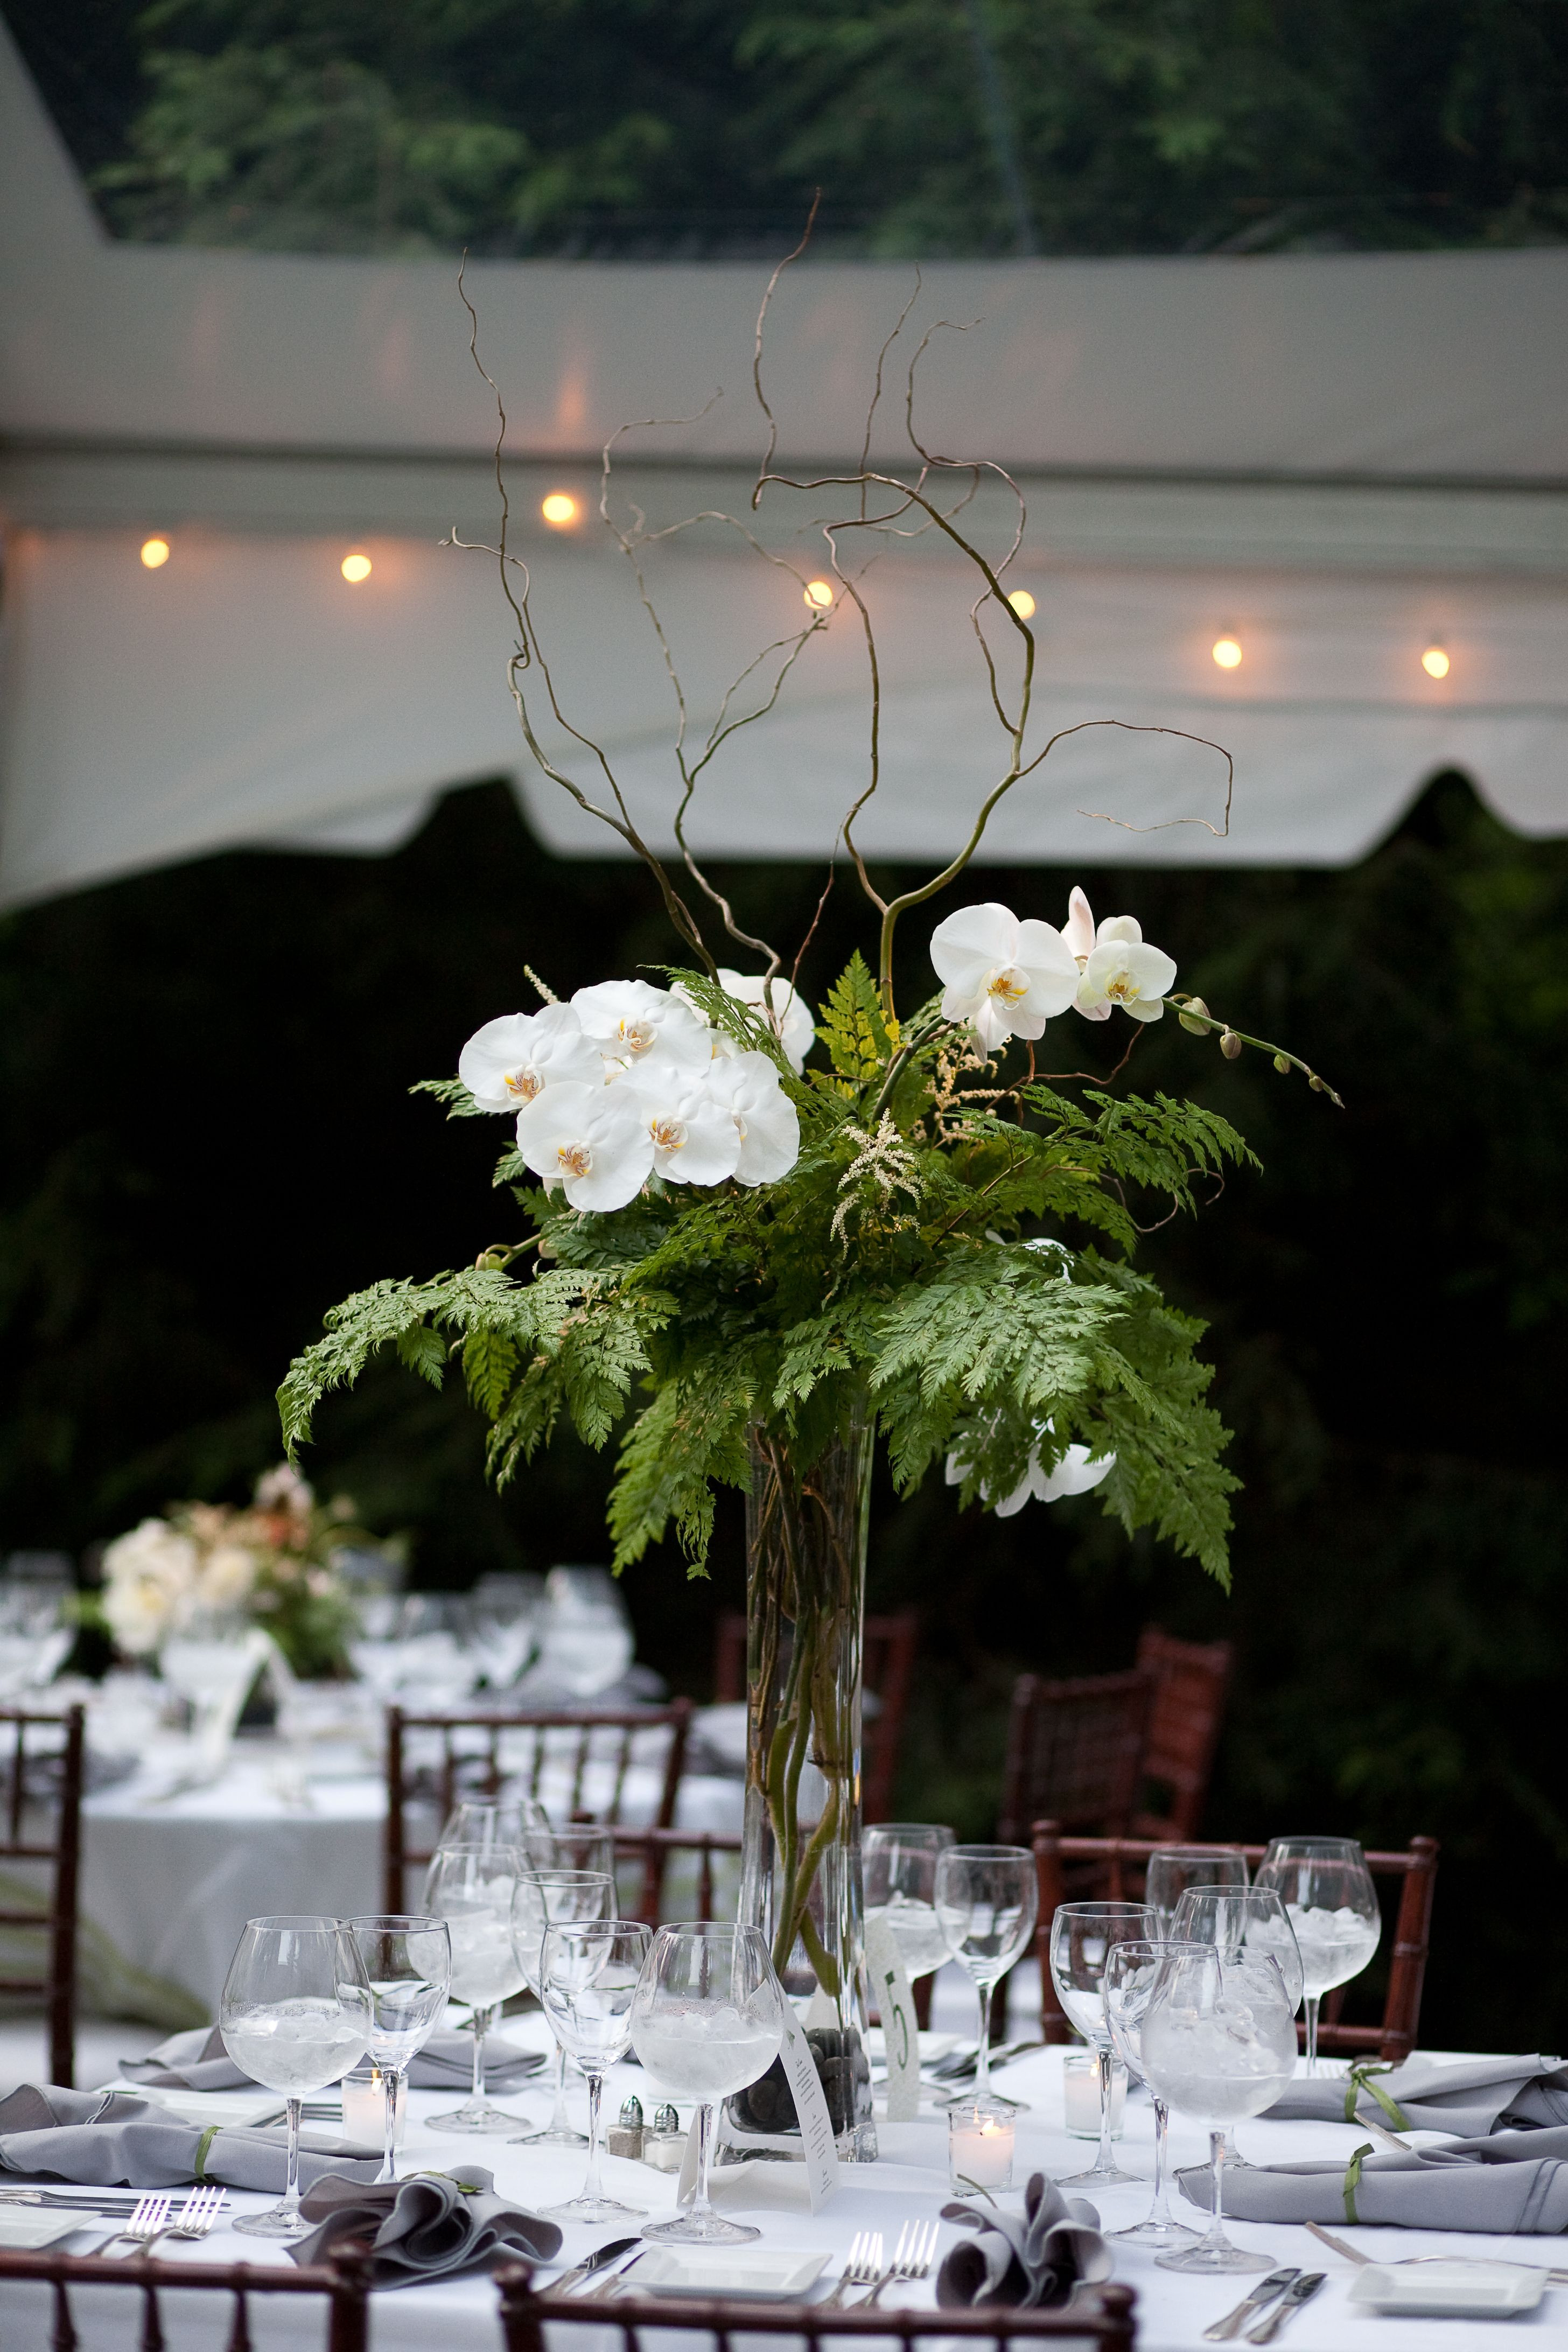 centerpieces were simple but striking lush ferns and strikingly elegant phalaenopsis orchids